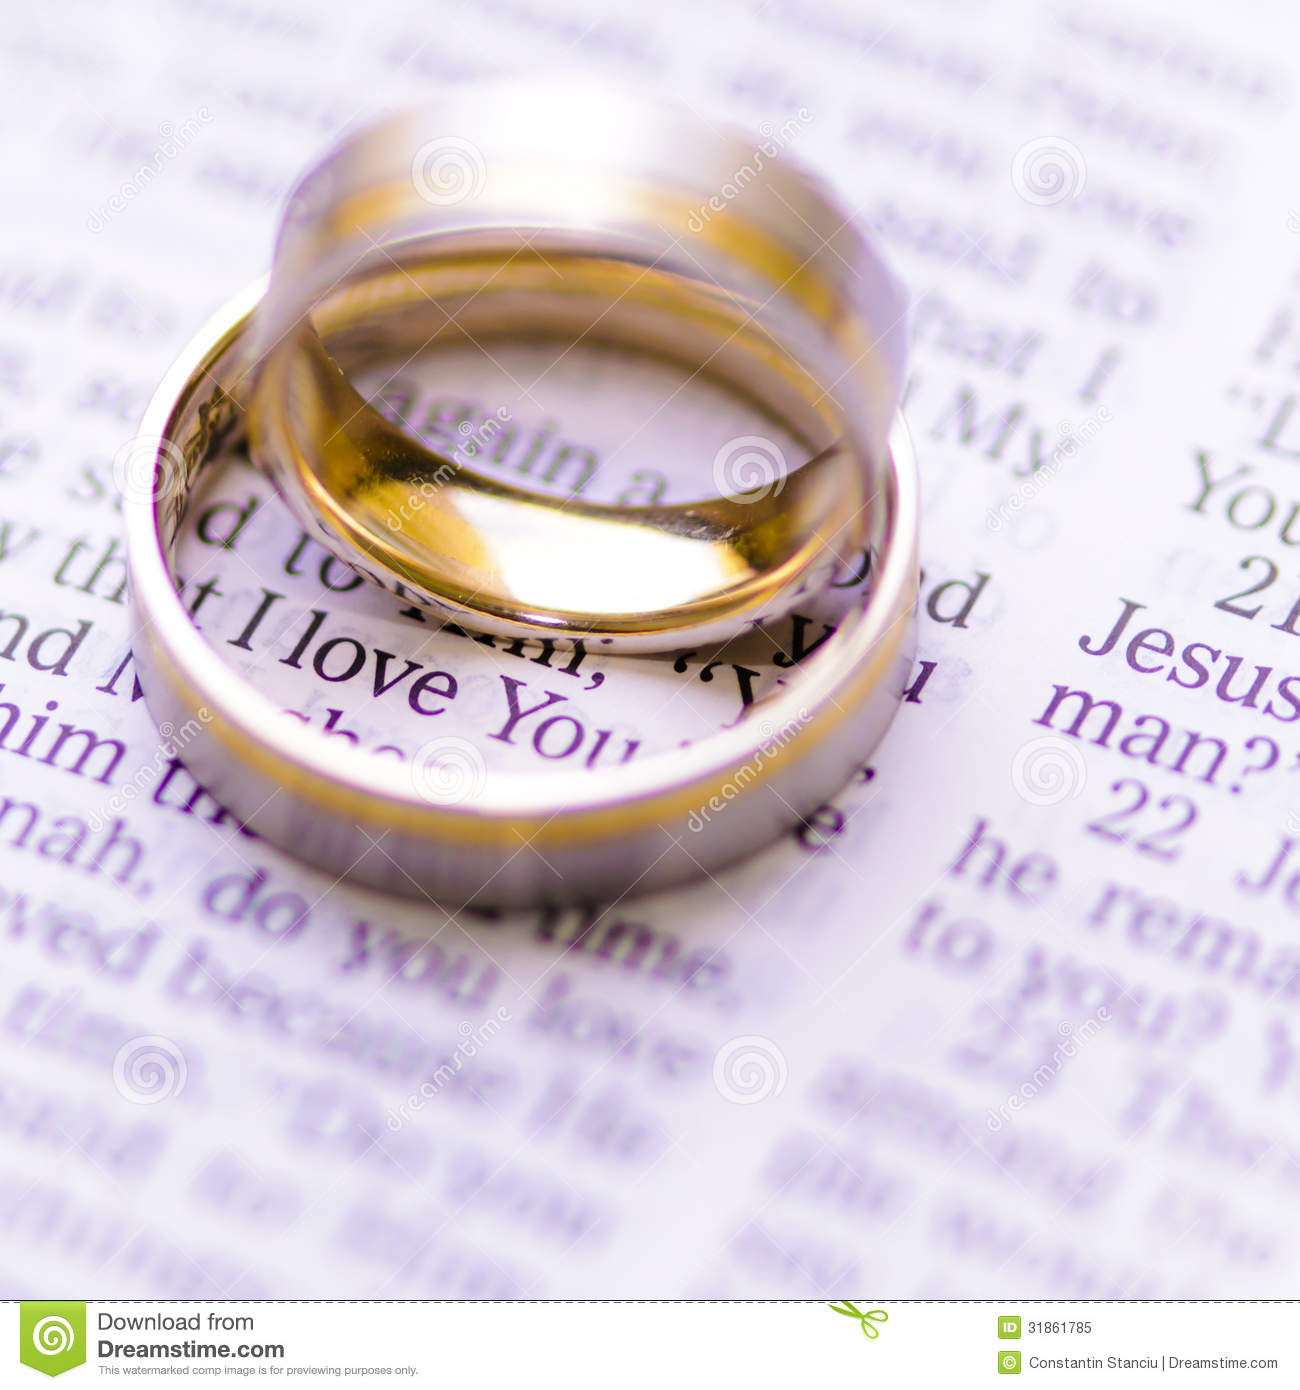 Wedding Rings On A Bible With I Love You Message Royalty Free Stock Photo